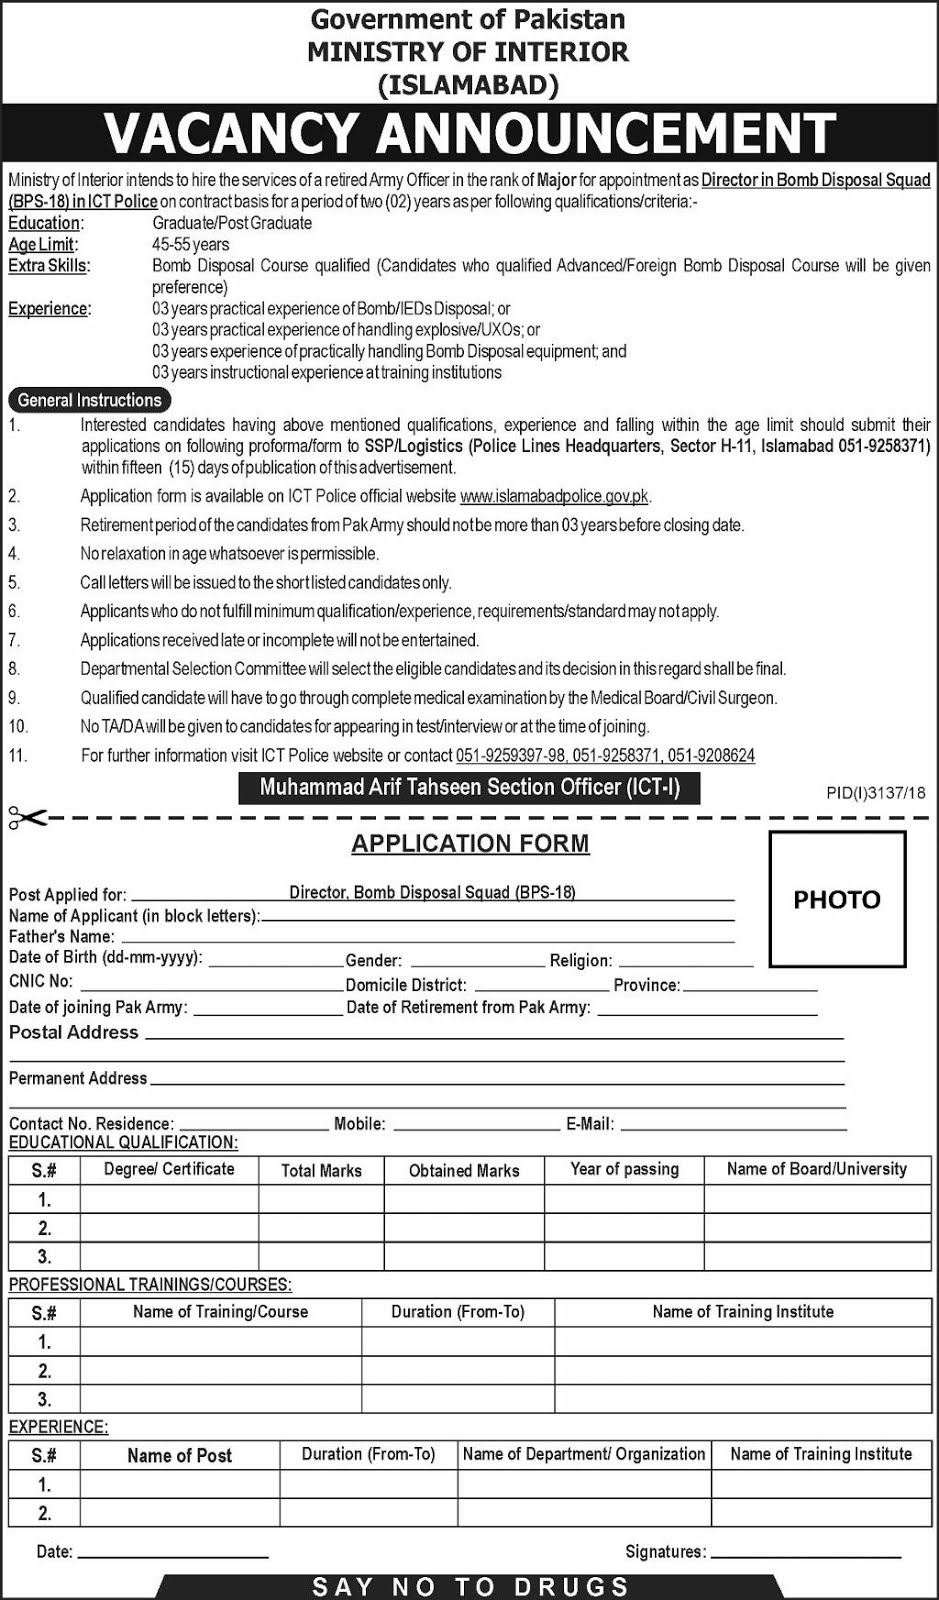 nadra jobs 2018 in islamabad,minister of state for interior shehryar afridi,jobs vacancies for womens in nadra,state minister for interior shehryar afridi,jobs in fia 2018 pakistan federal investigation,interior ministry,ministry of interior,current jobs in fia,interior minister shehryar afridi,interior minister,ministry of interior pakistan contact number,interior minister shehryar khan afridi